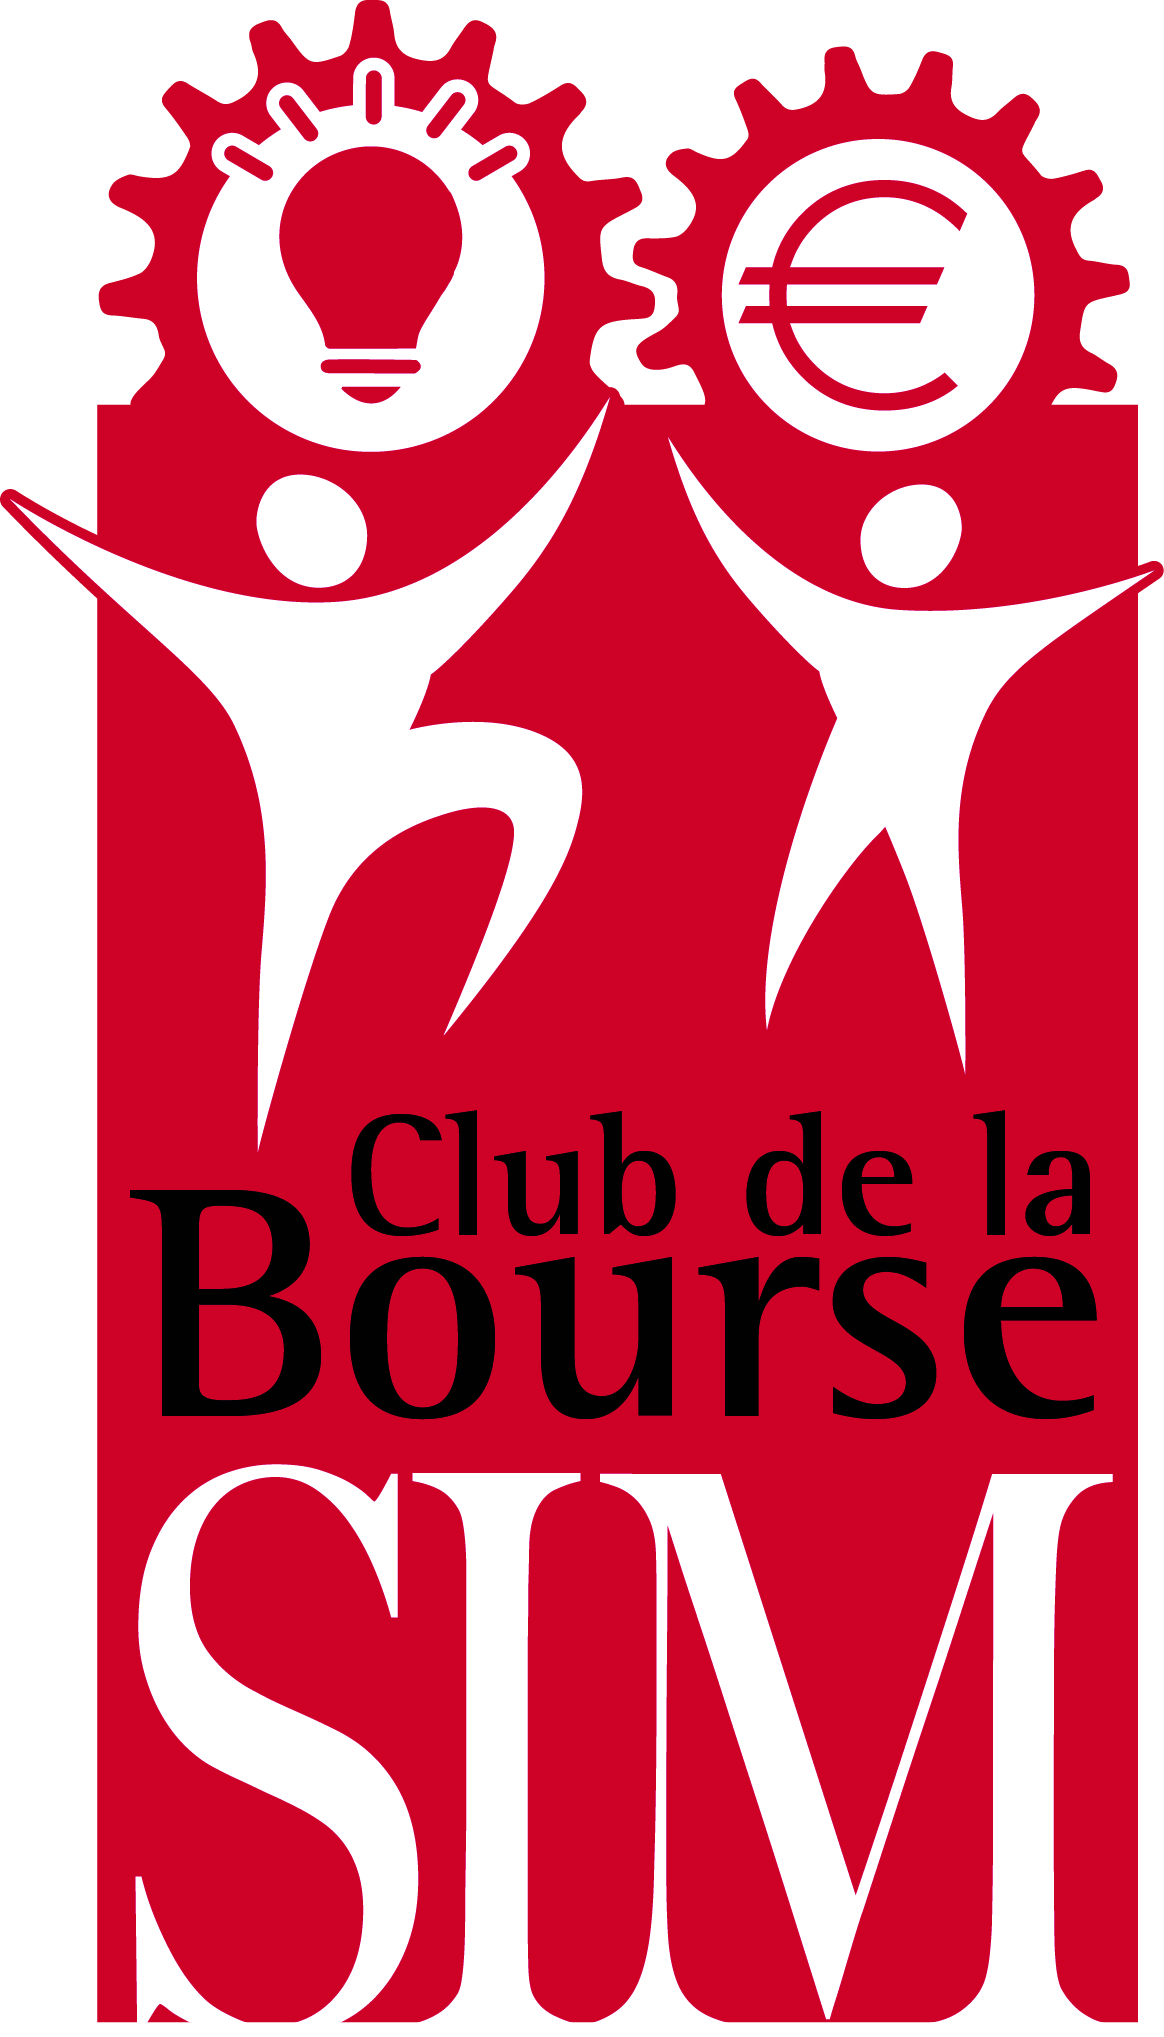 logo-club-de-la-bourse